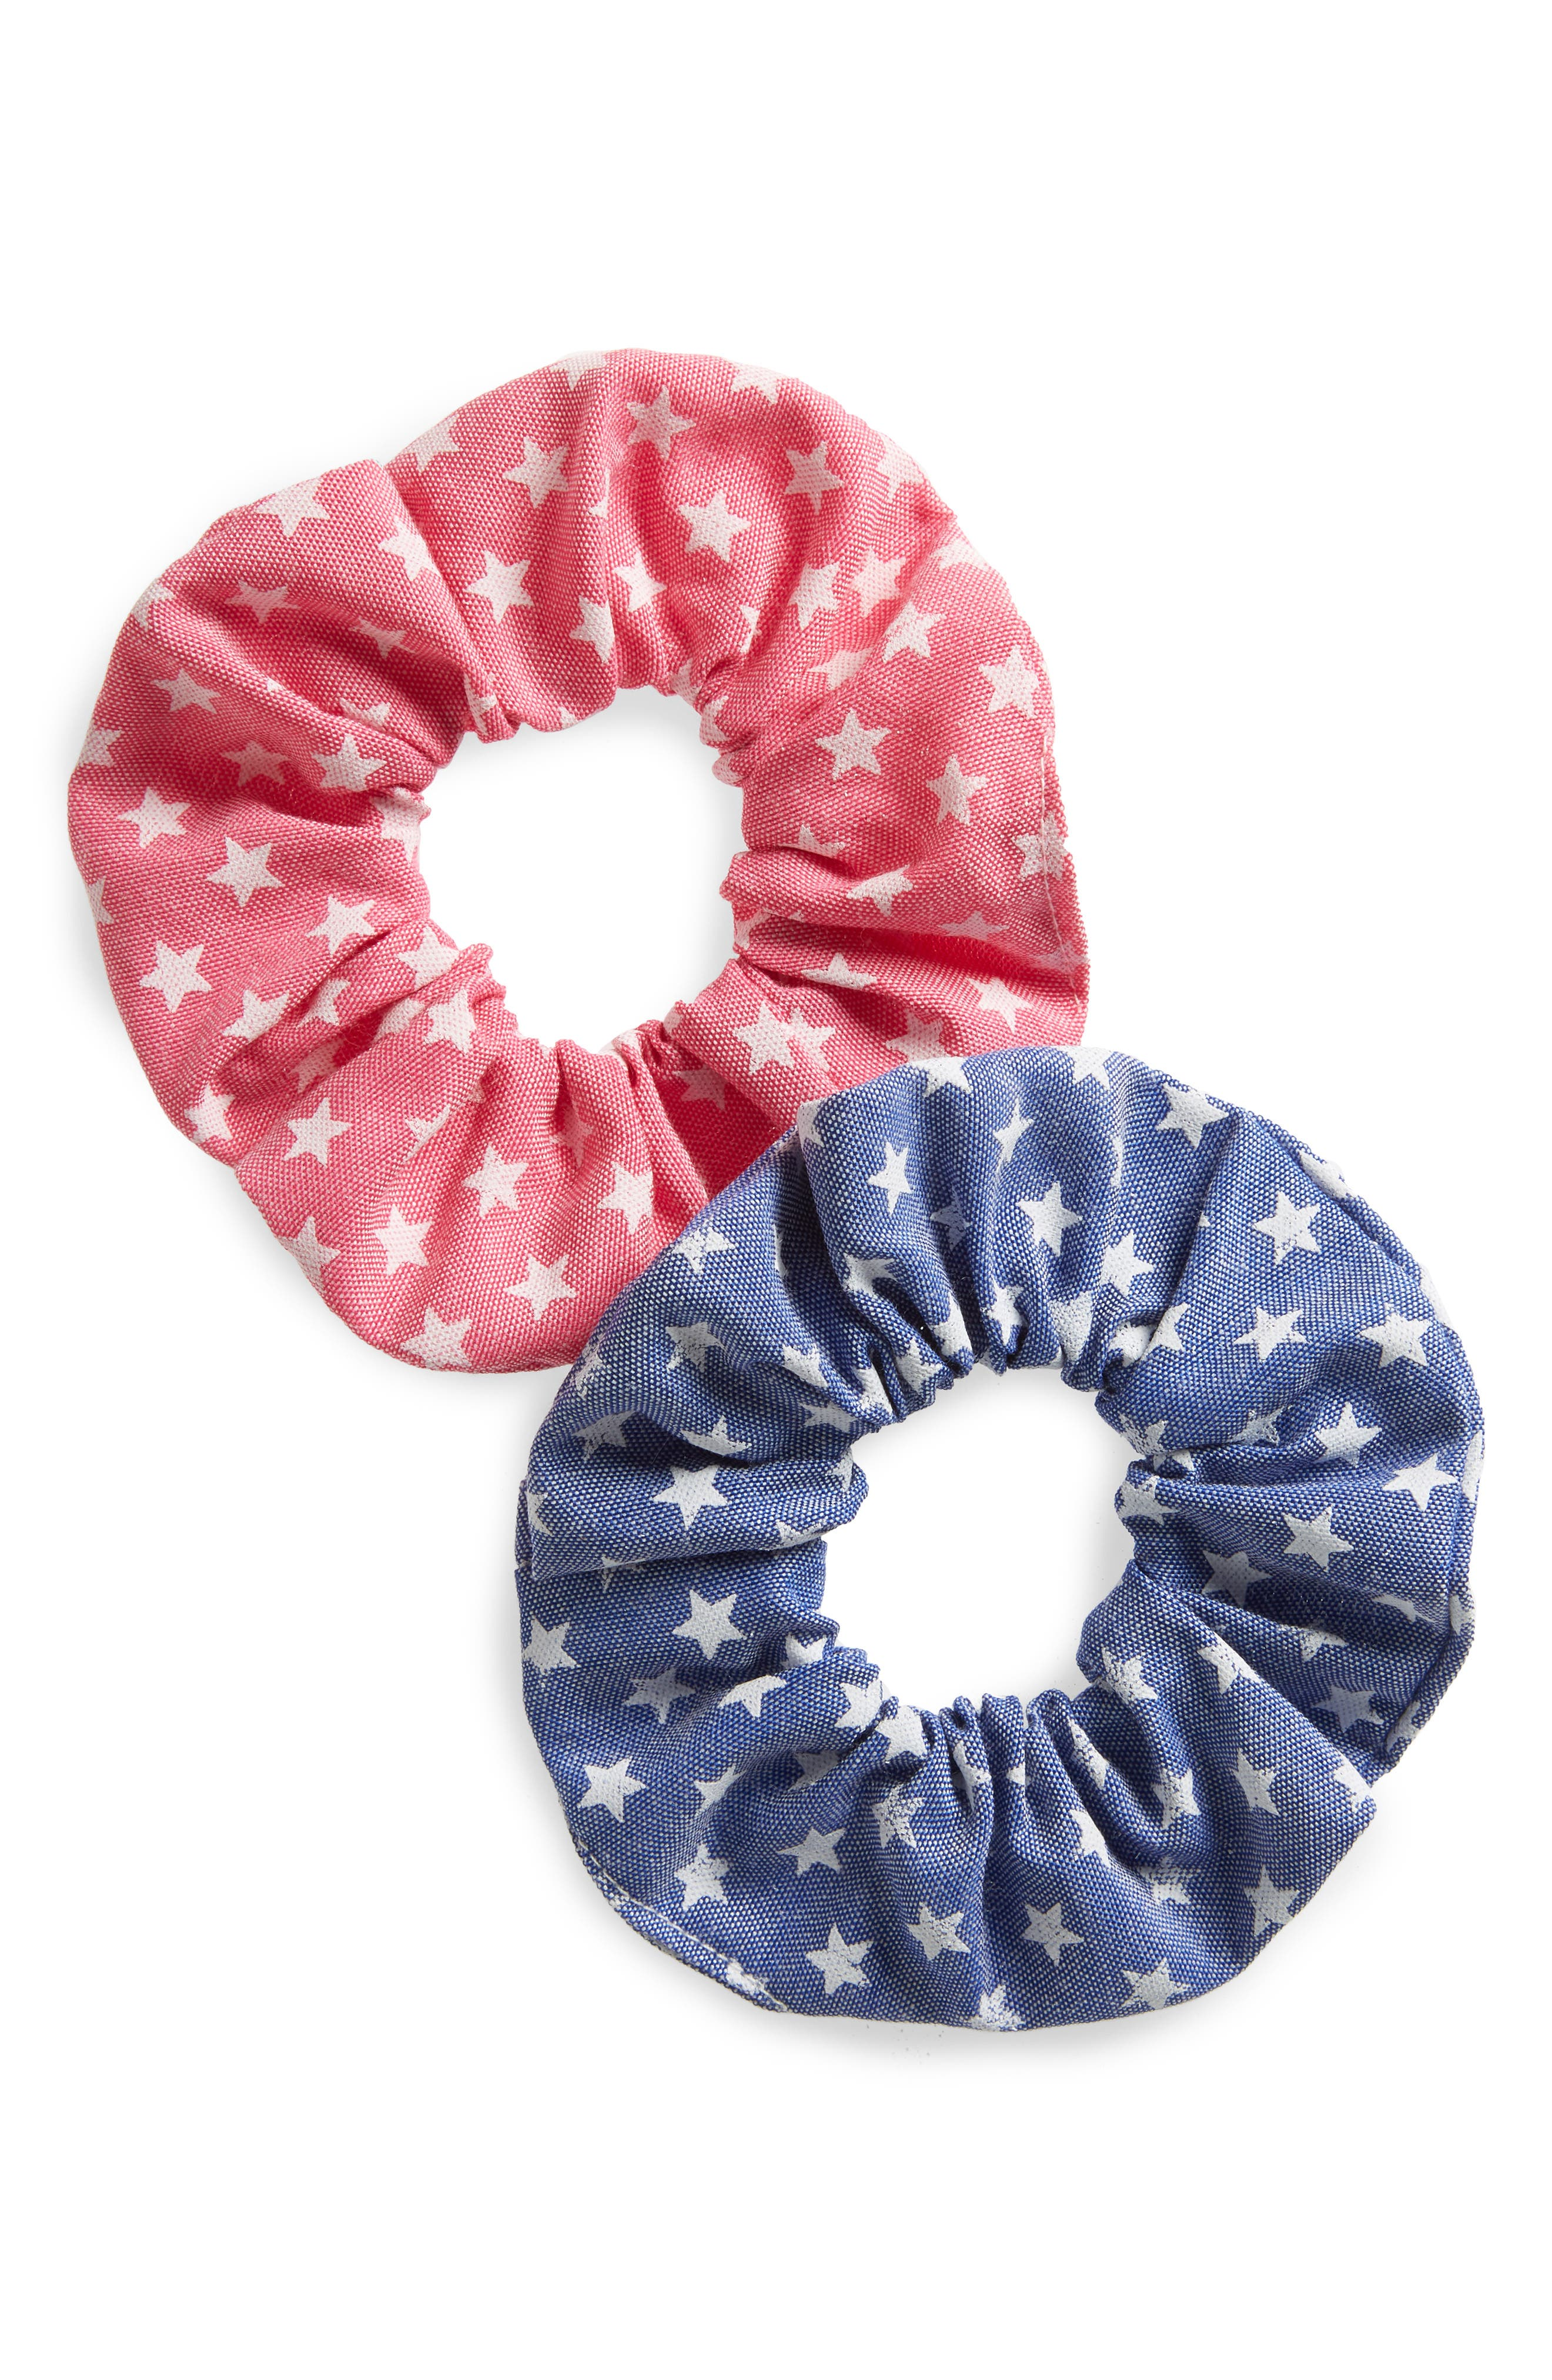 Stars Scrunchie,                         Main,                         color, Red/ Blue